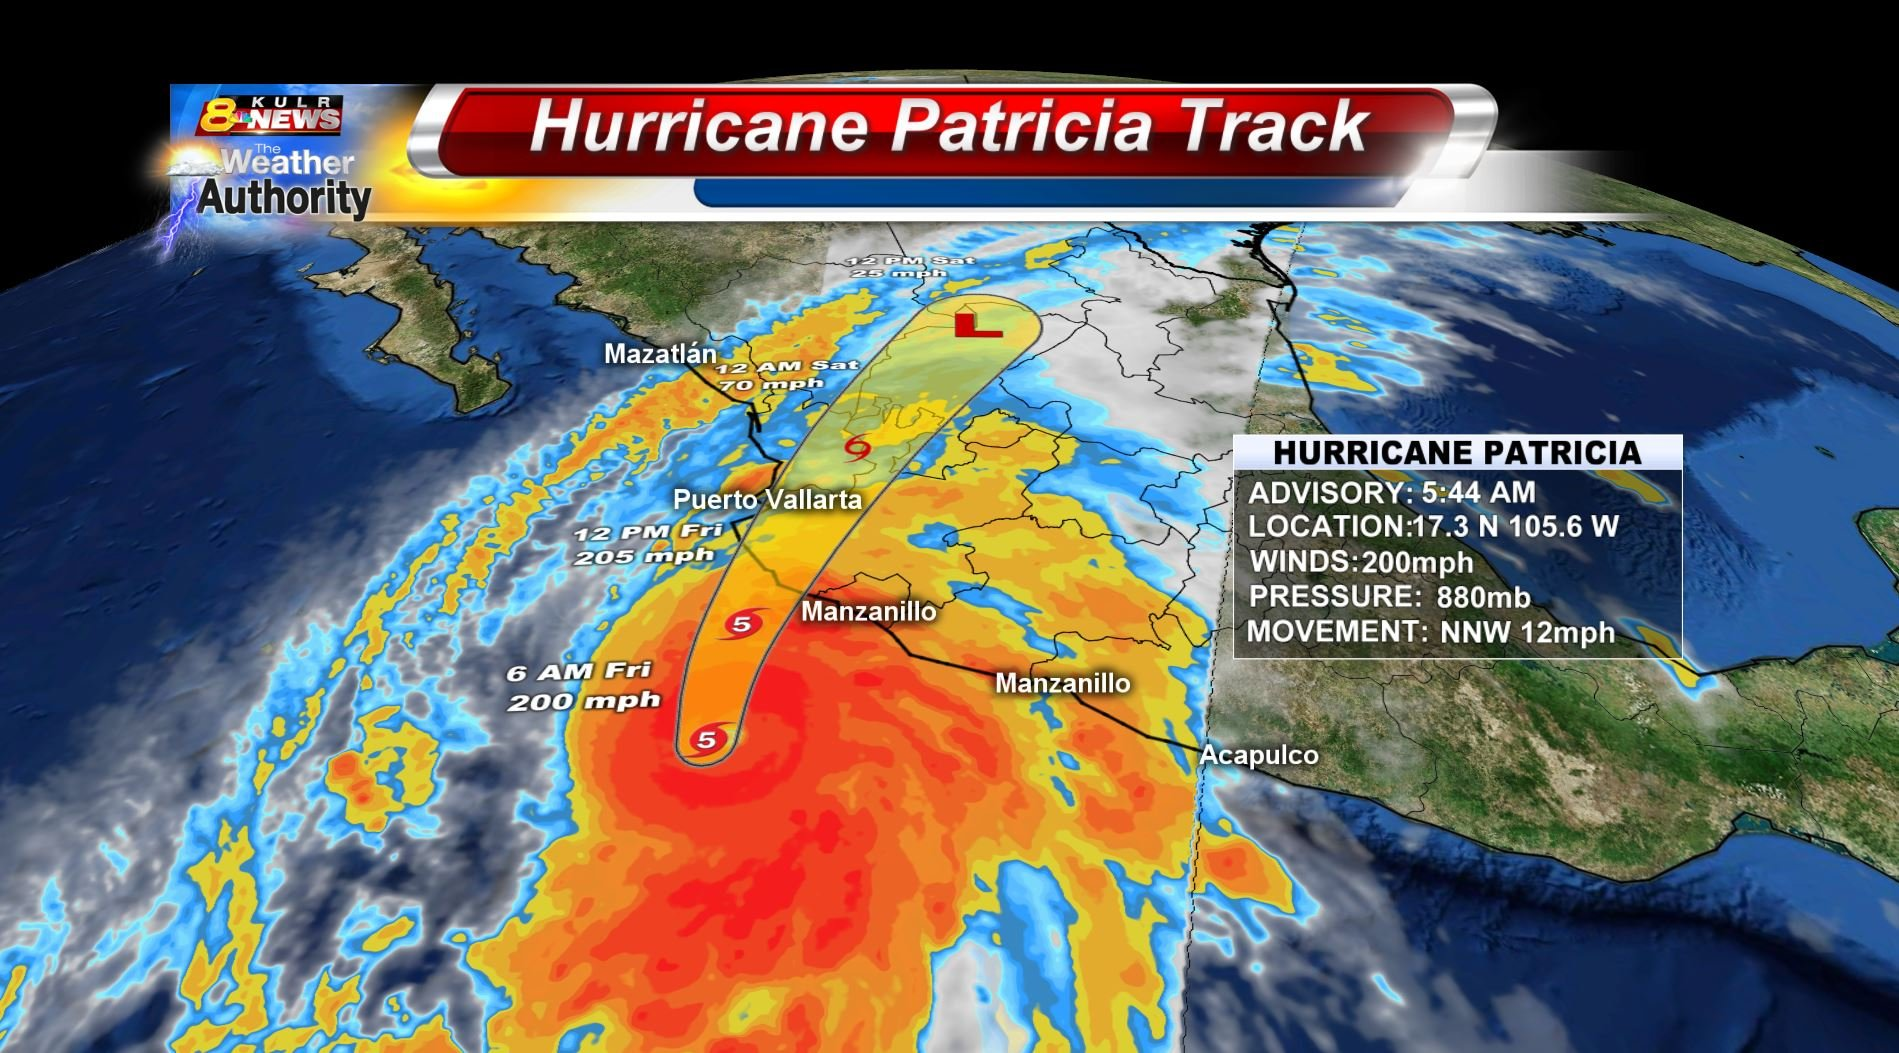 Patricia strongest recorded hurricane with 200mph winds menac